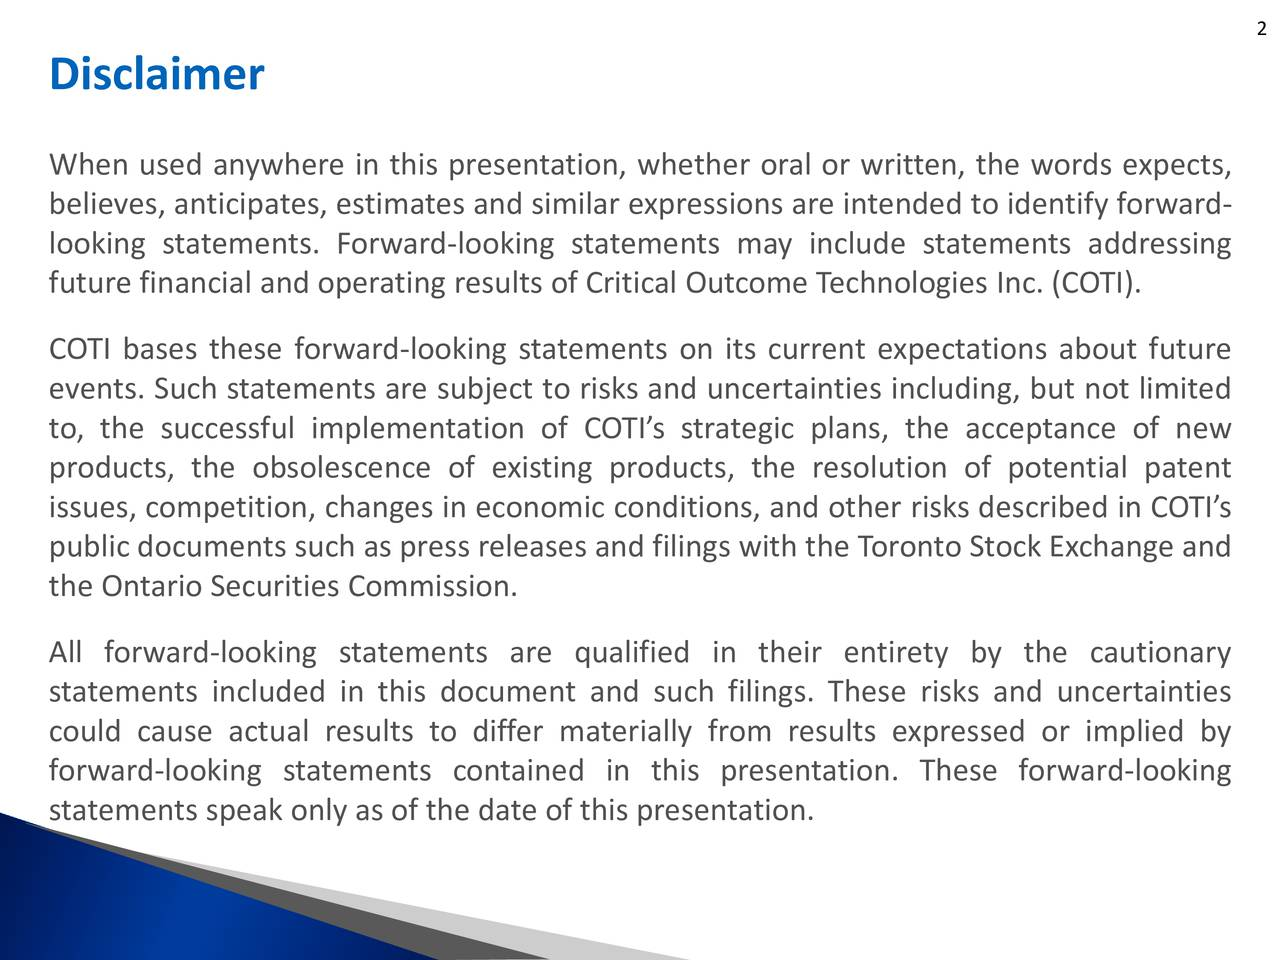 Disclaimer When used anywhere in this presentation, whether oral or written, the words expects, believes, anticipates, estimates and similar expressions are intended to identify forward- looking statements. Forward-looking statements may include statements addressing future financial and operating results of Critical Outcome Technologies Inc. (COTI). COTI bases these forward-looking statements on its current expectations about future events. Such statements are subject to risks and uncertainties including, but not limited to, the successful implementation of COTIs strategic plans, the acceptance of new products, the obsolescence of existing products, the resolution of potential patent issues, competition, changes in economic conditions, and other risks described in COTIs public documents such as press releases and filings with the Toronto Stock Exchange and the Ontario Securities Commission. All forward-looking statements are qualified in their entirety by the cautionary statements included in this document and such filings. These risks and uncertainties could cause actual results to differ materially from results expressed or implied by forward-looking statements contained in this presentation. These forward-looking statements speak only as of the date of this presentation.